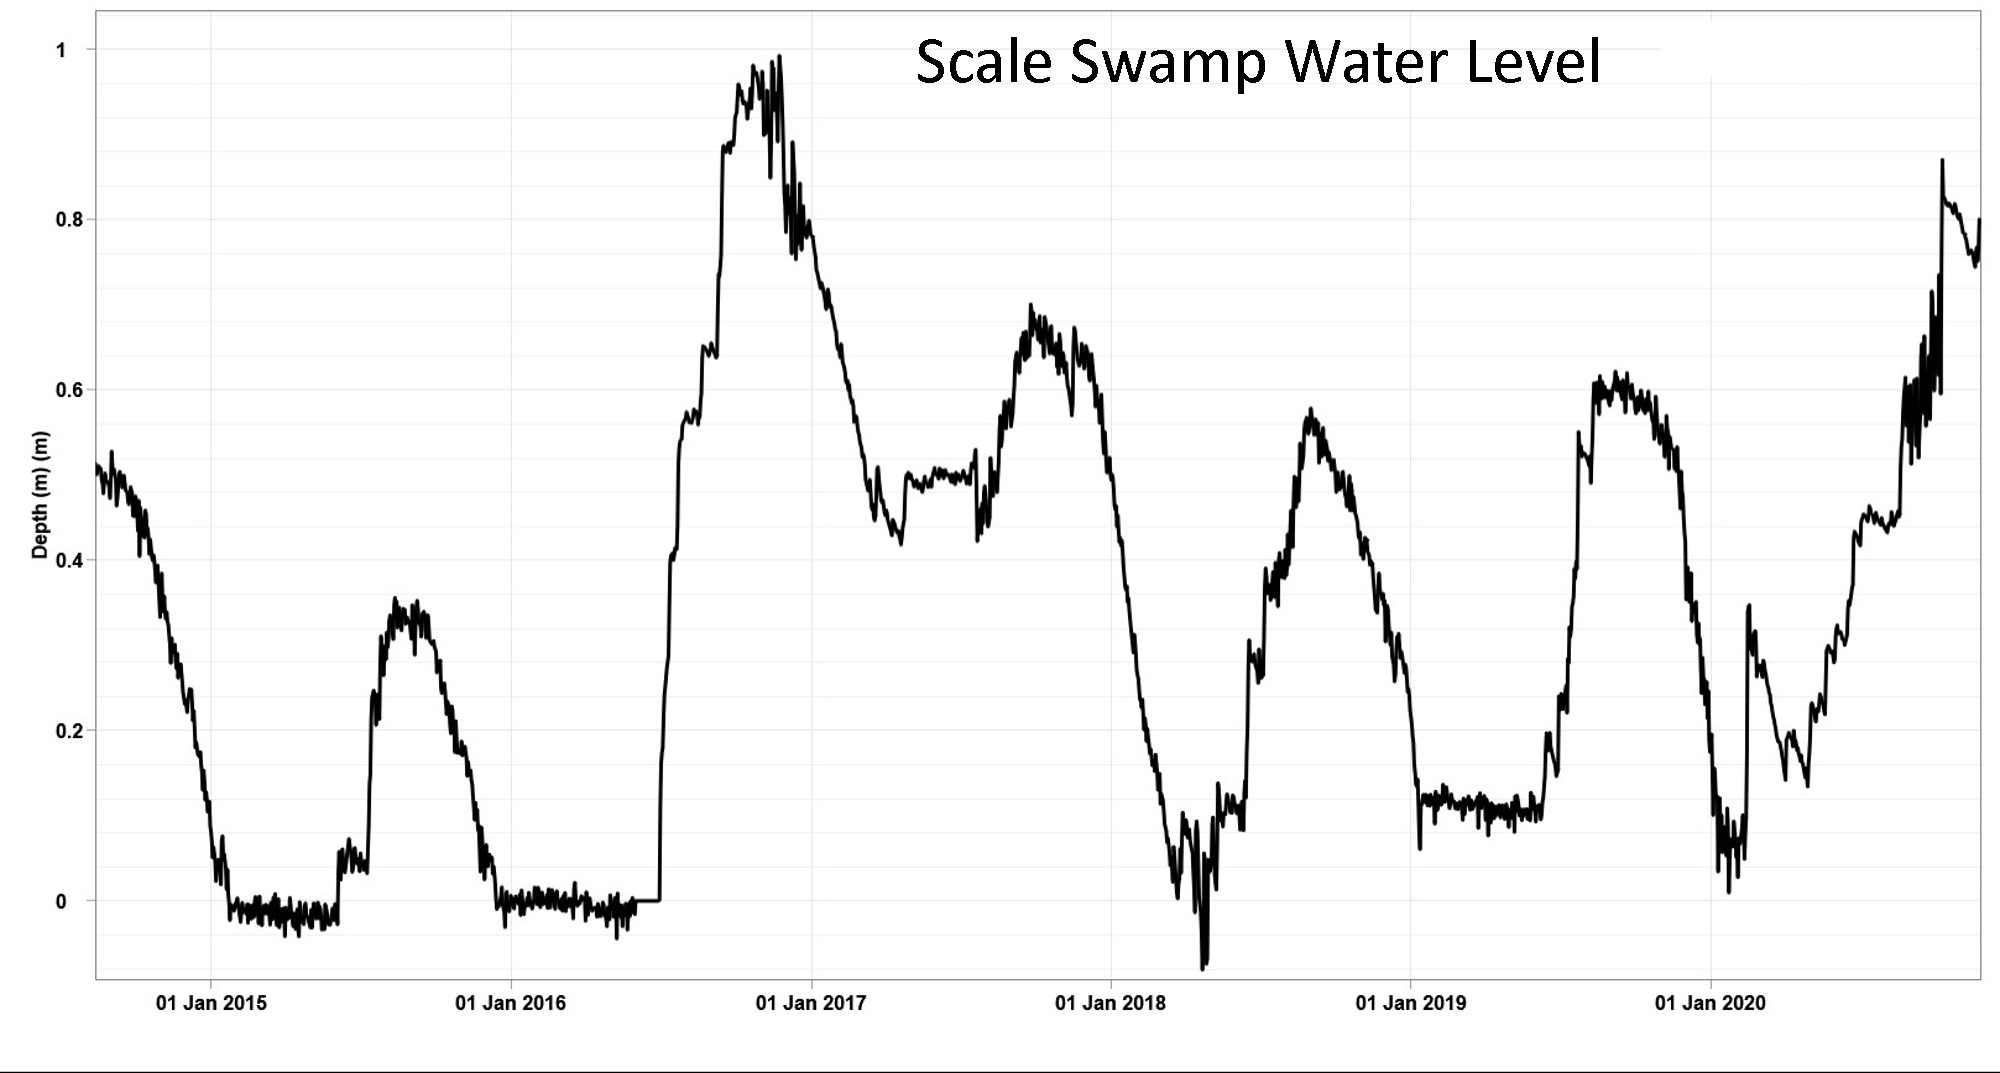 Scale Swamp Nov 2020